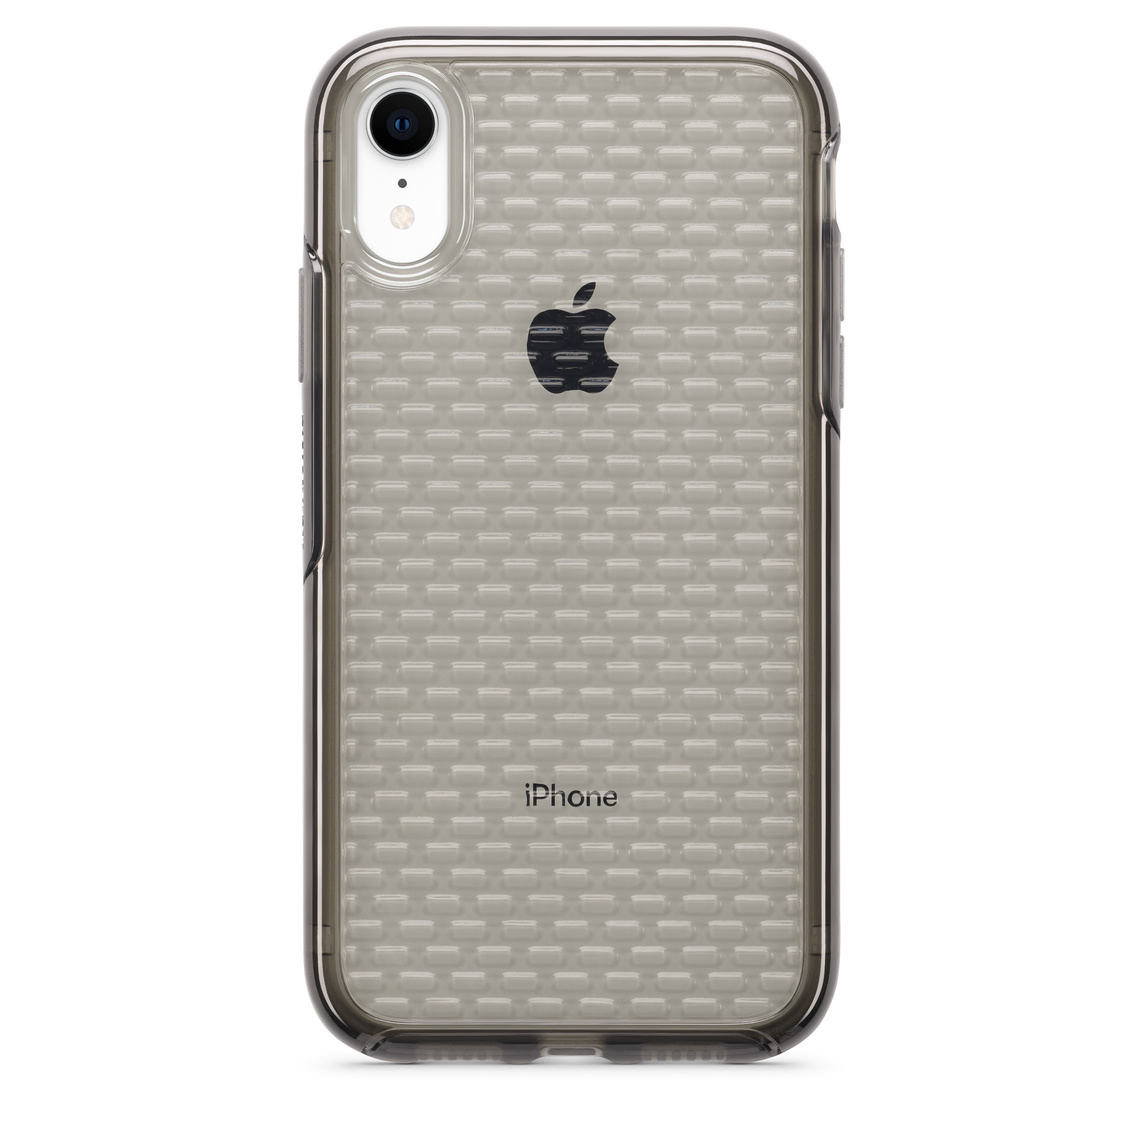 iphone otterbox xr case